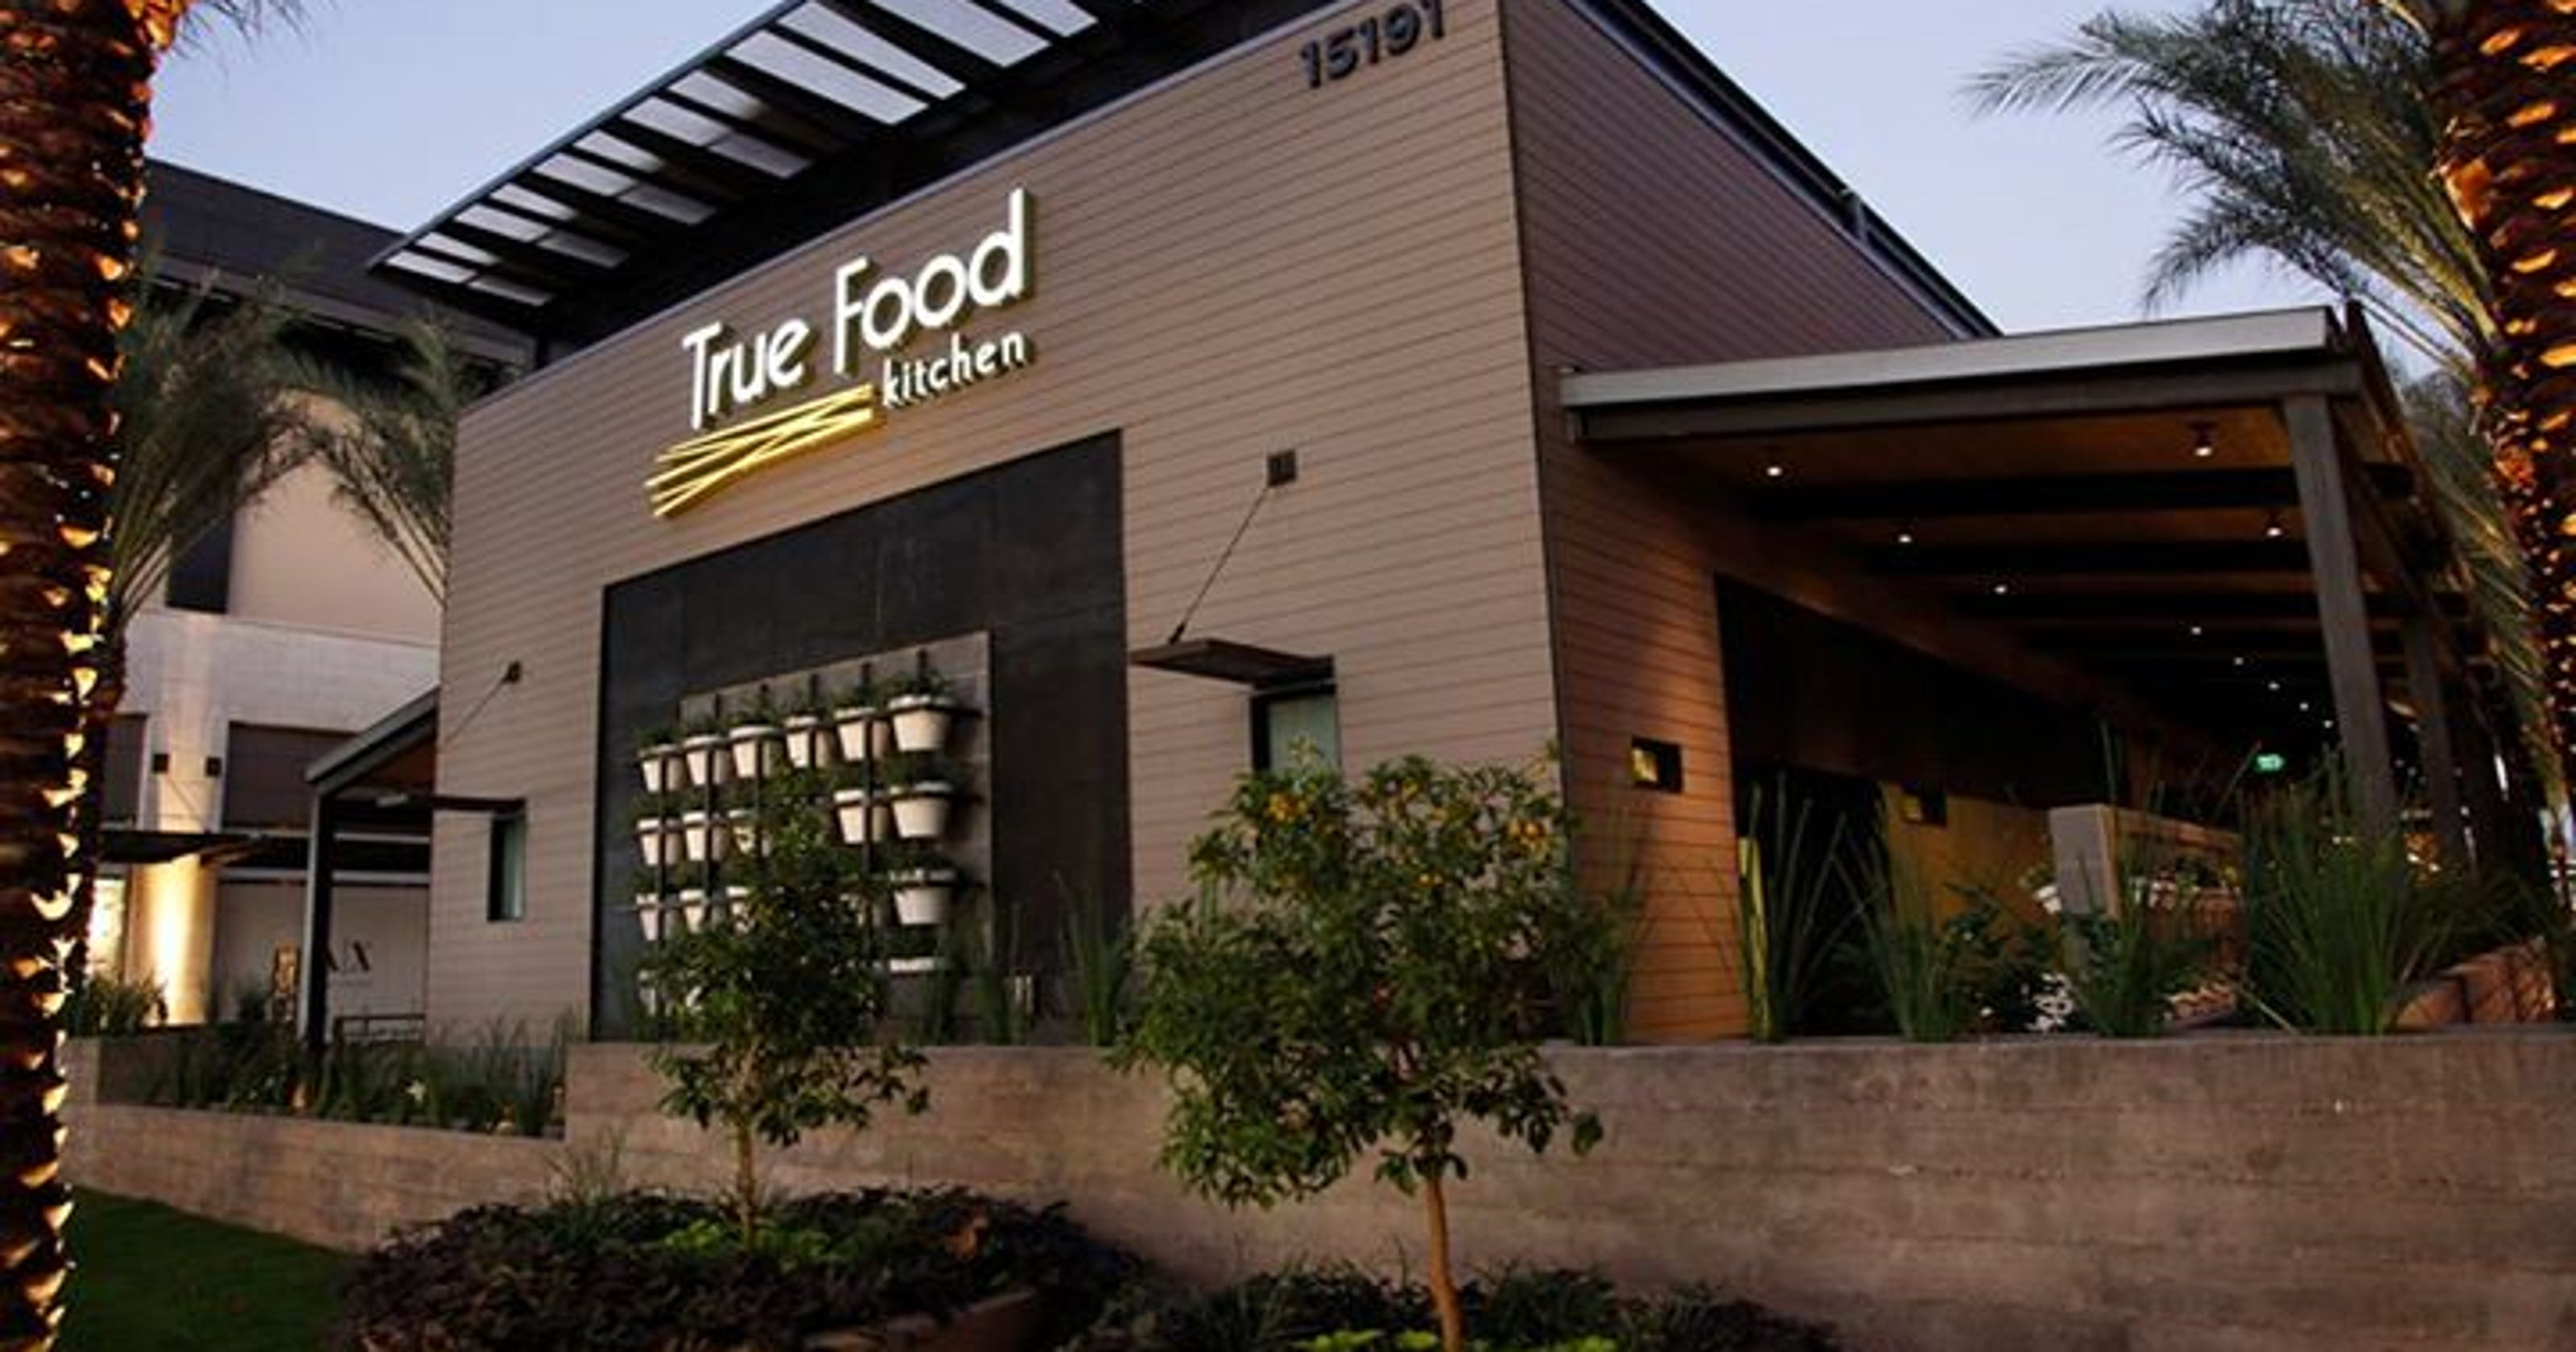 True Food Kitchen has a new brand chef